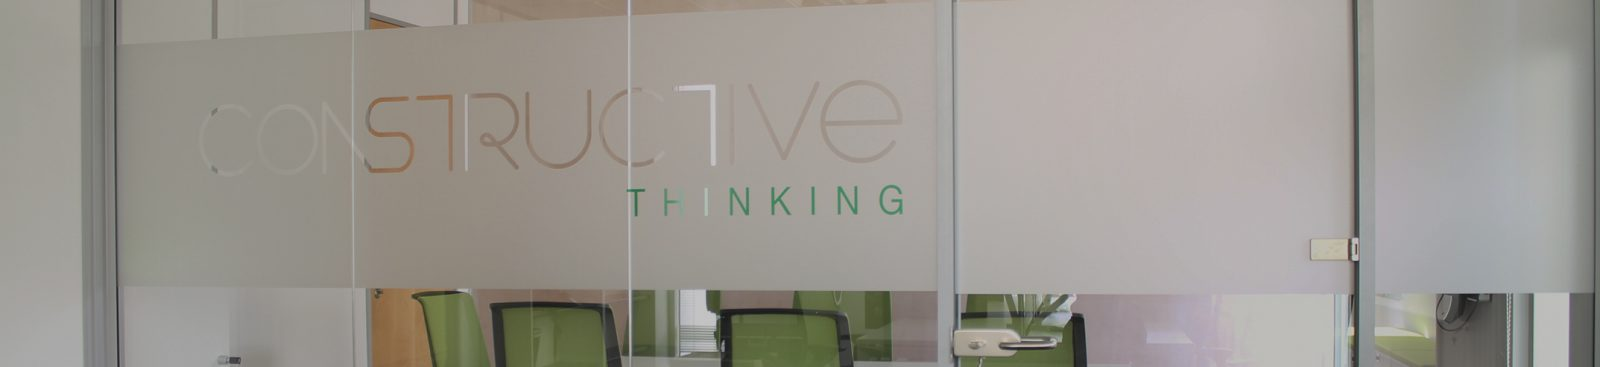 Constructive Thinking gets the full fit out service image